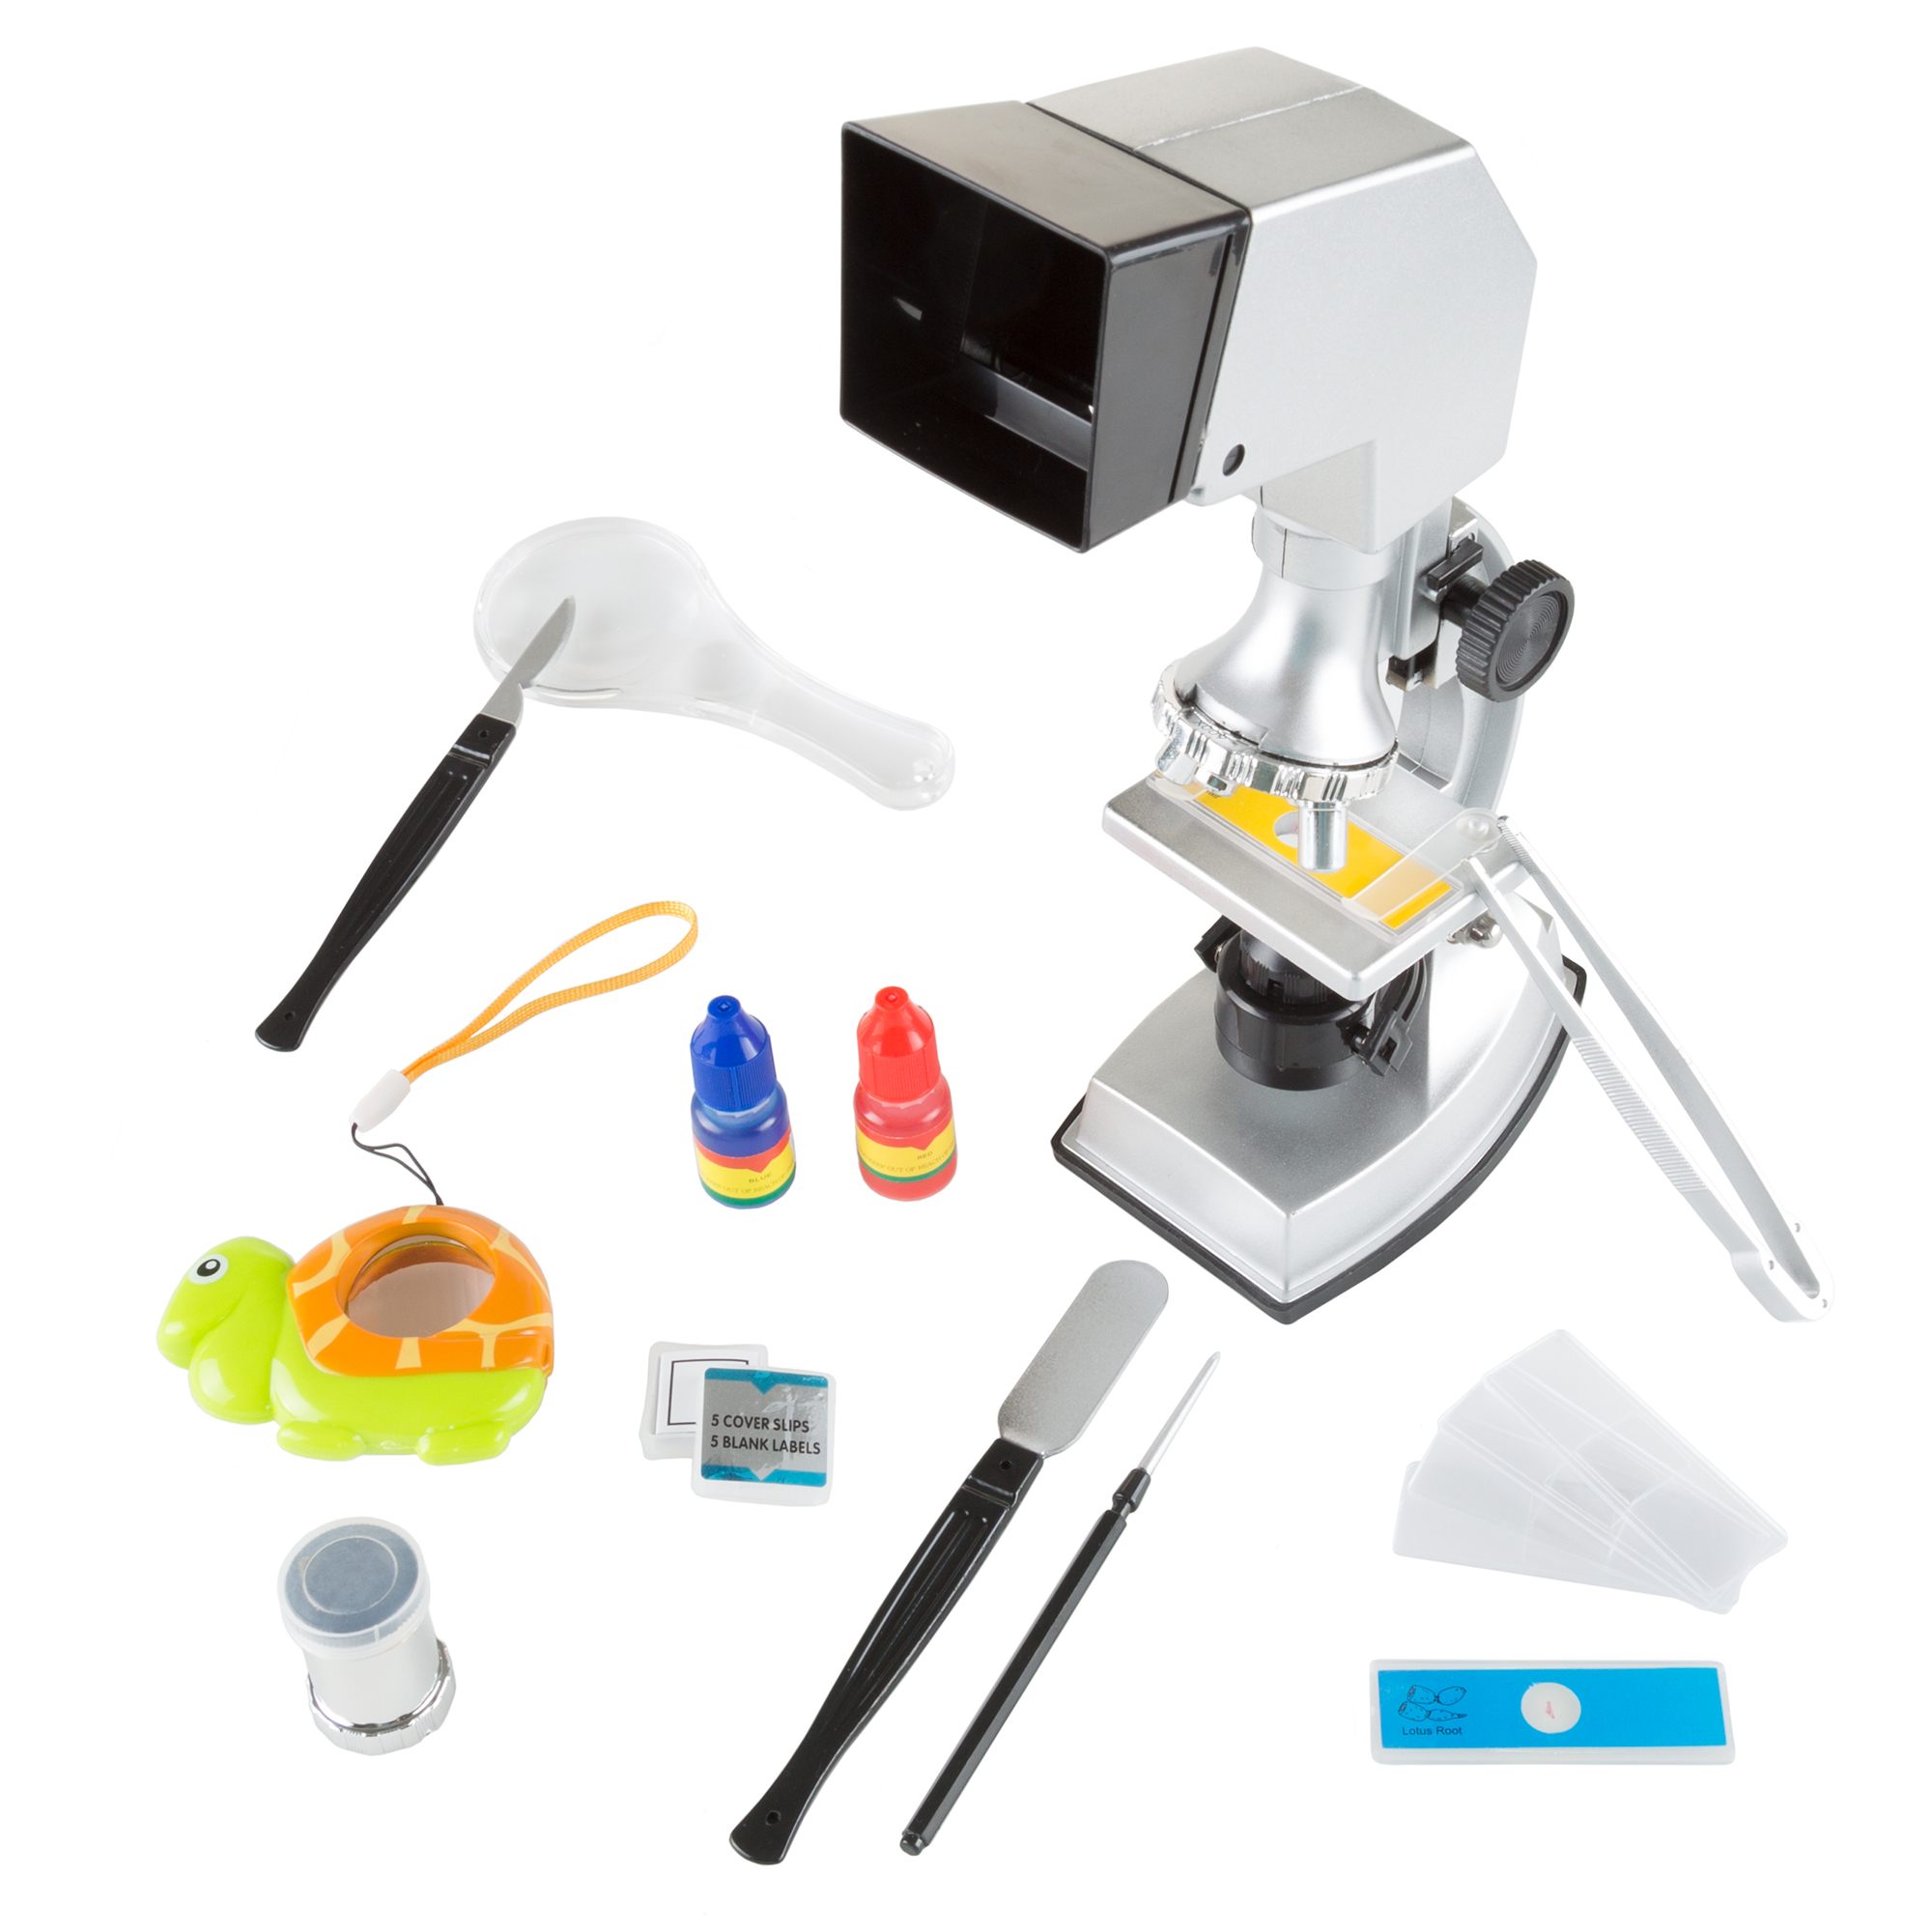 Microscope for Kids, 18 Piece Educational Science Set, 4-Way Magnification form 100x to 900x with Projection... by Trademark Global LLC